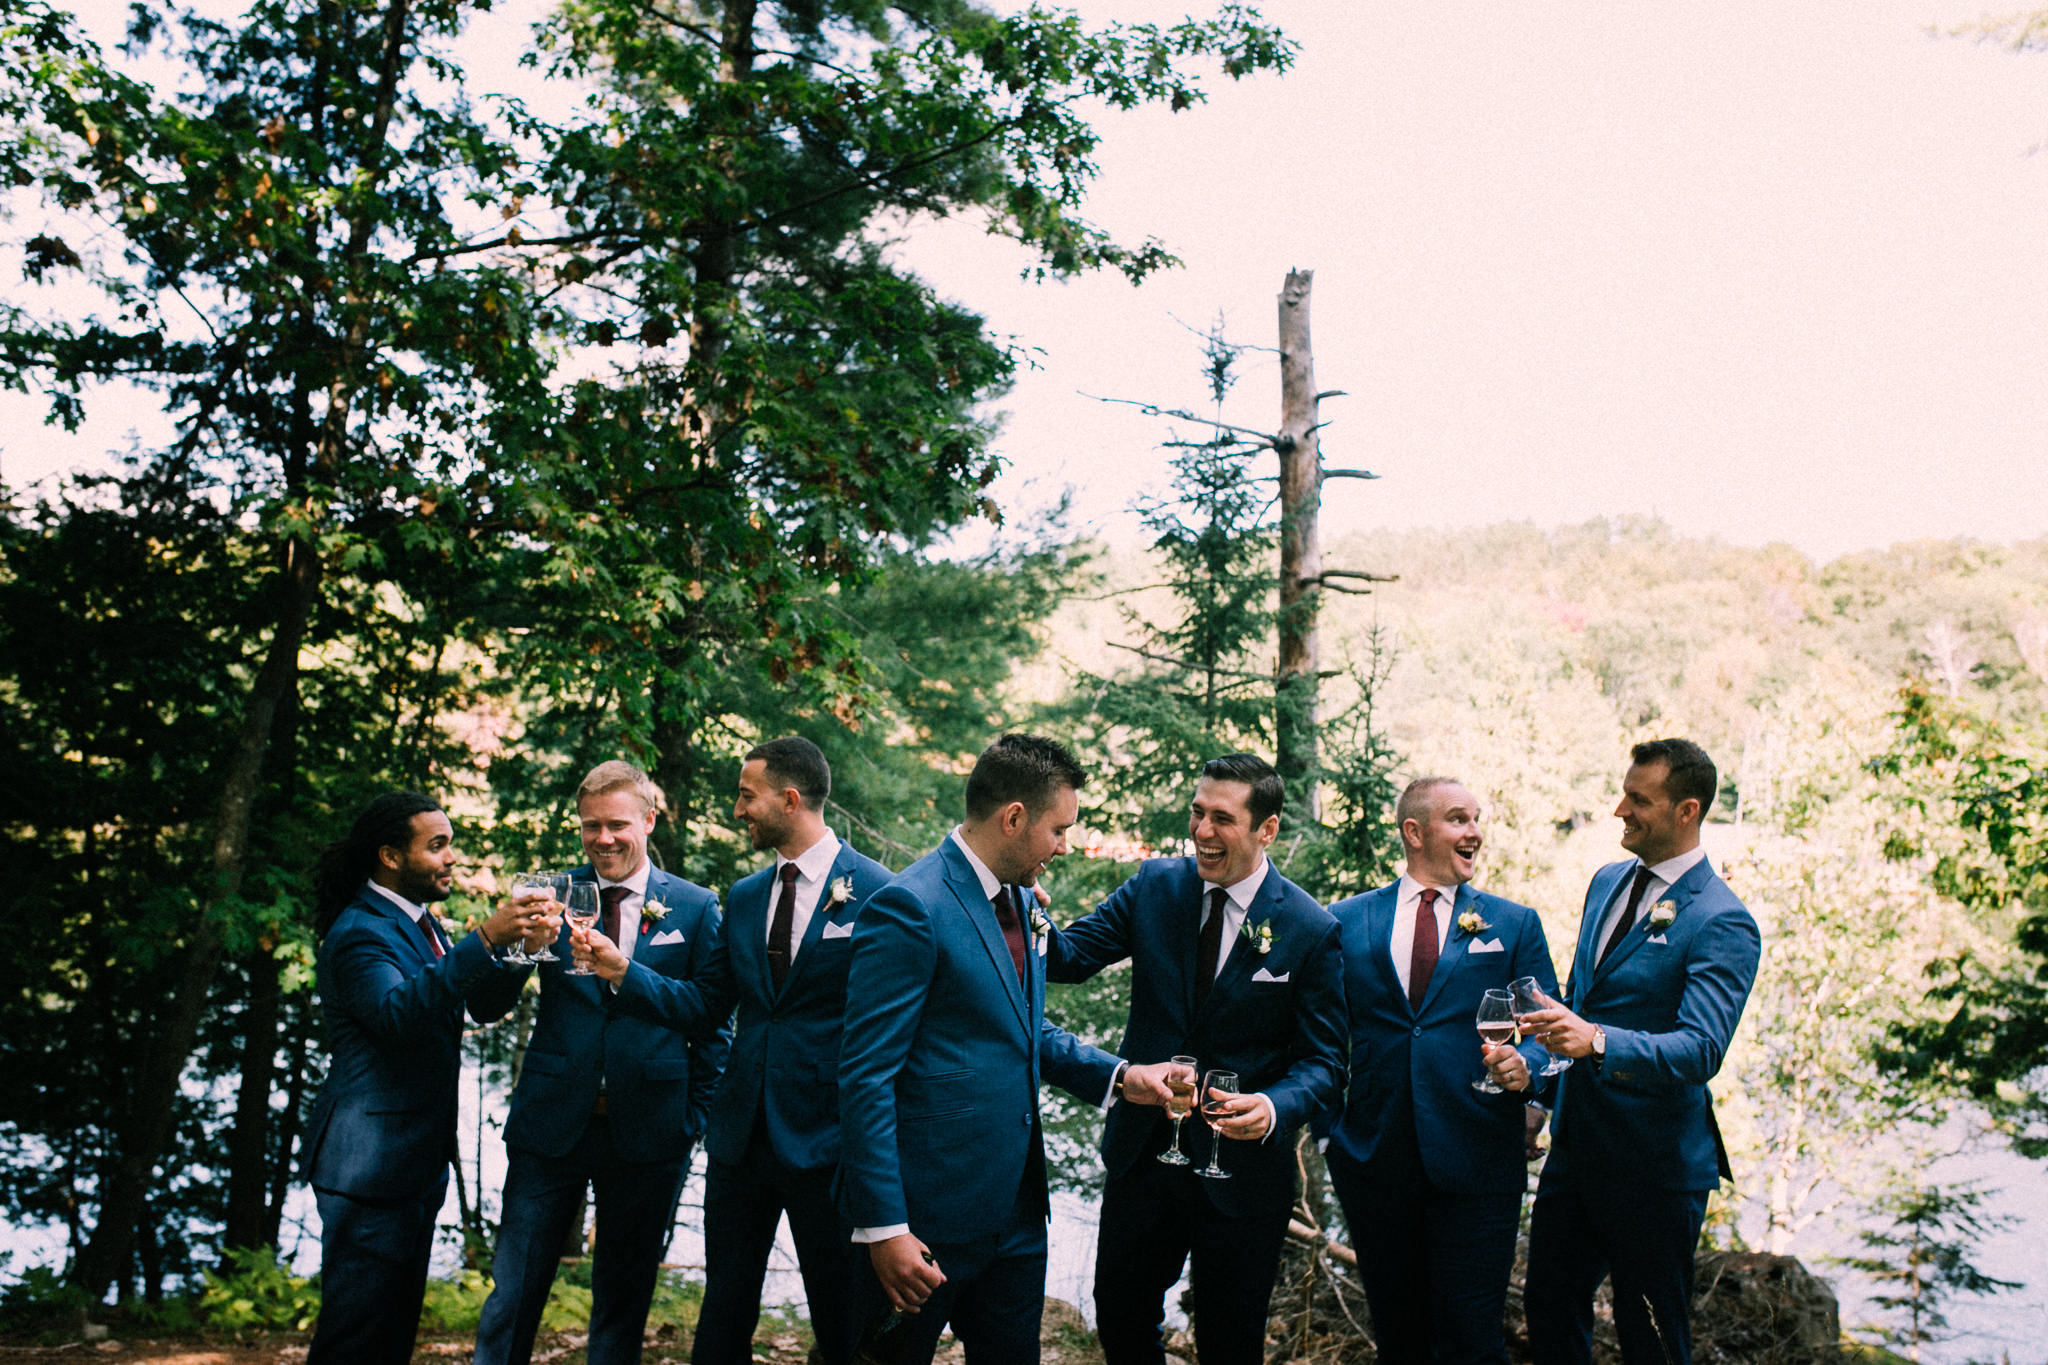 Muskoka lakeside wedding at Port Cunnington Lodge by Max Wong Photo (31)